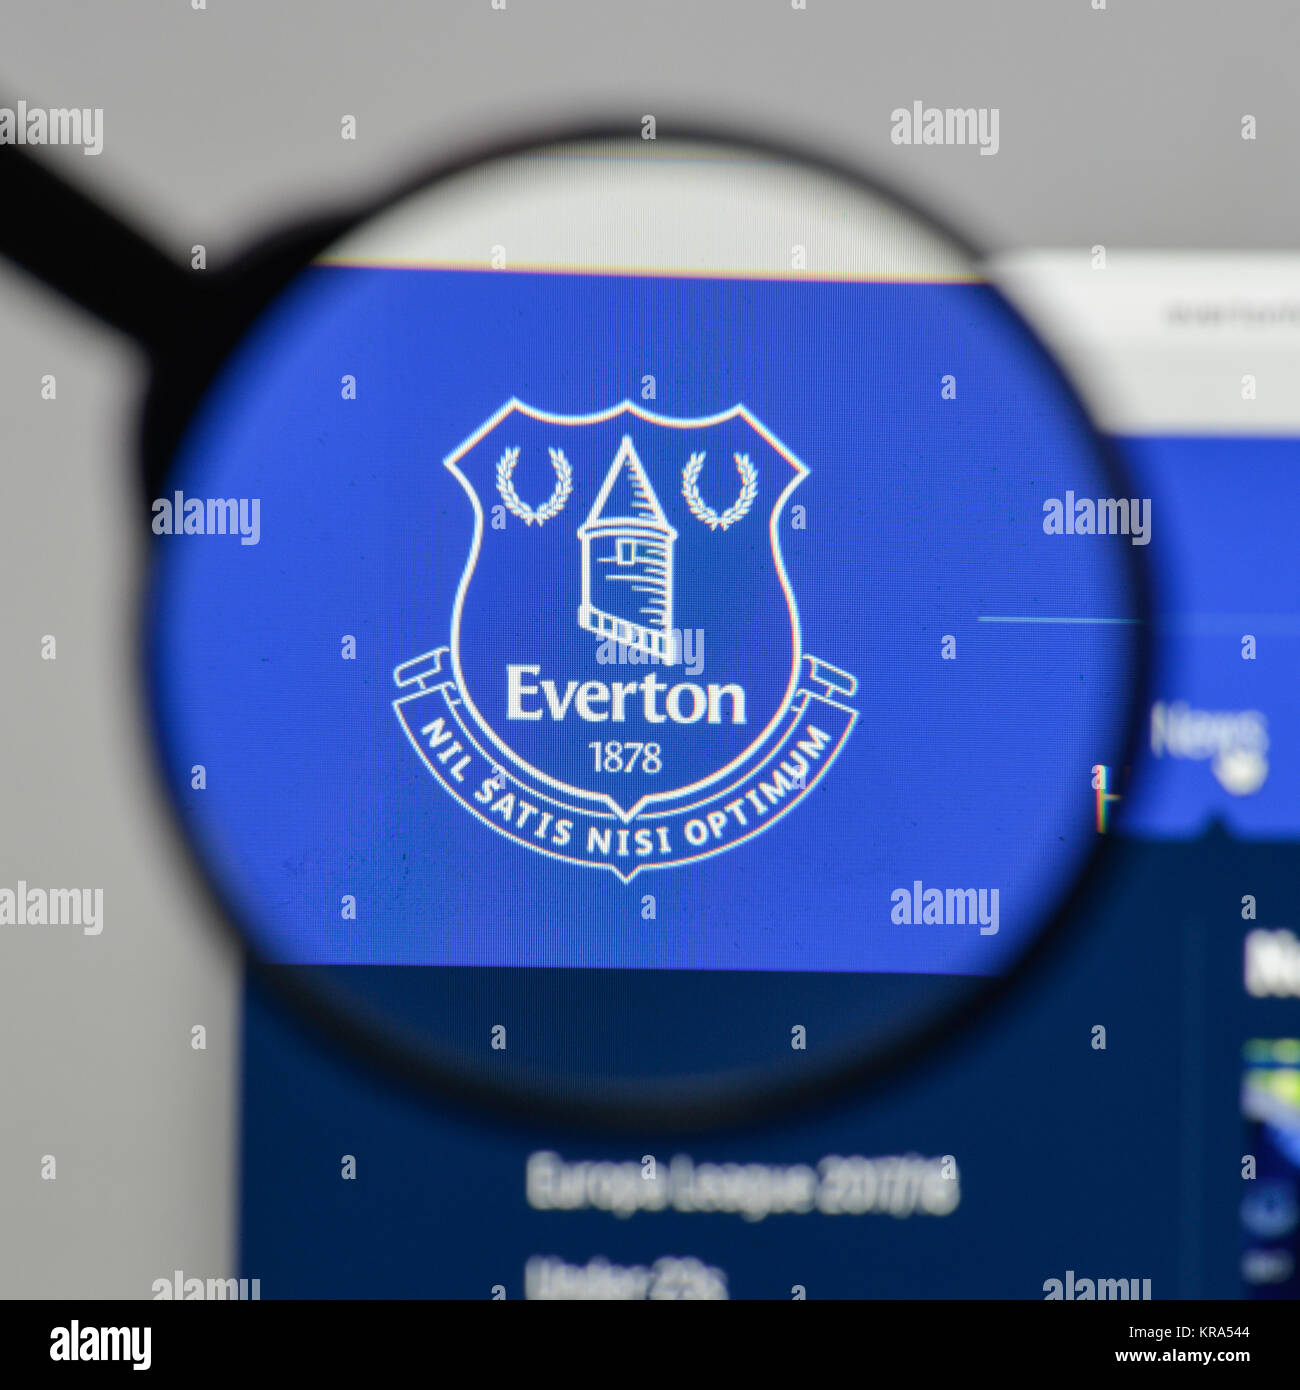 Everton Fc Logo High Resolution Stock Photography And Images Alamy